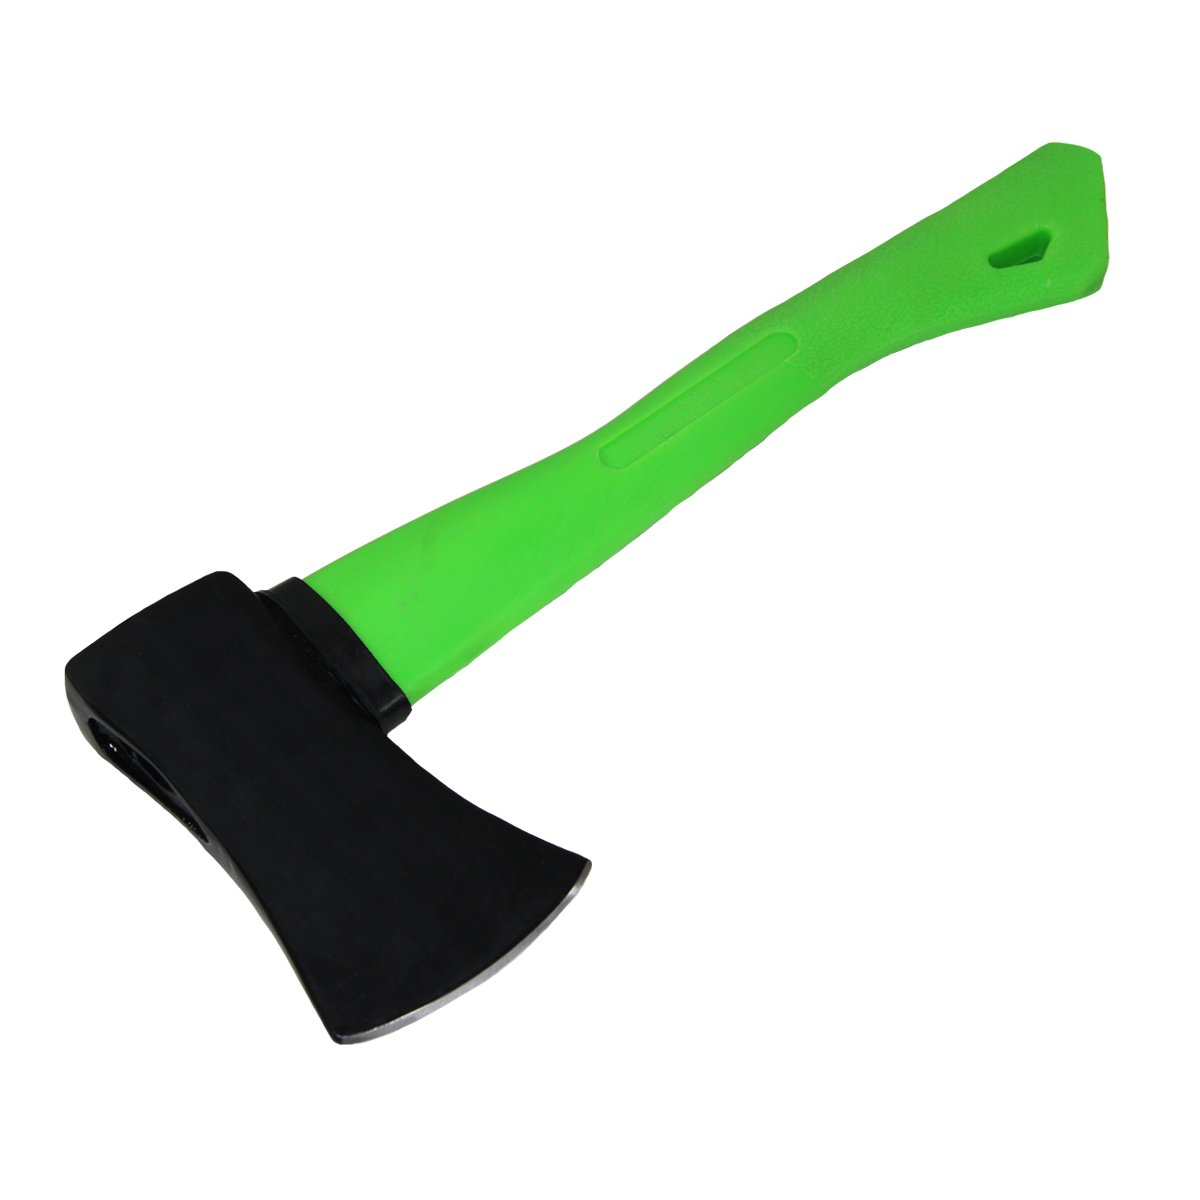 Grip 1.25 lb Camping Axe by Grip